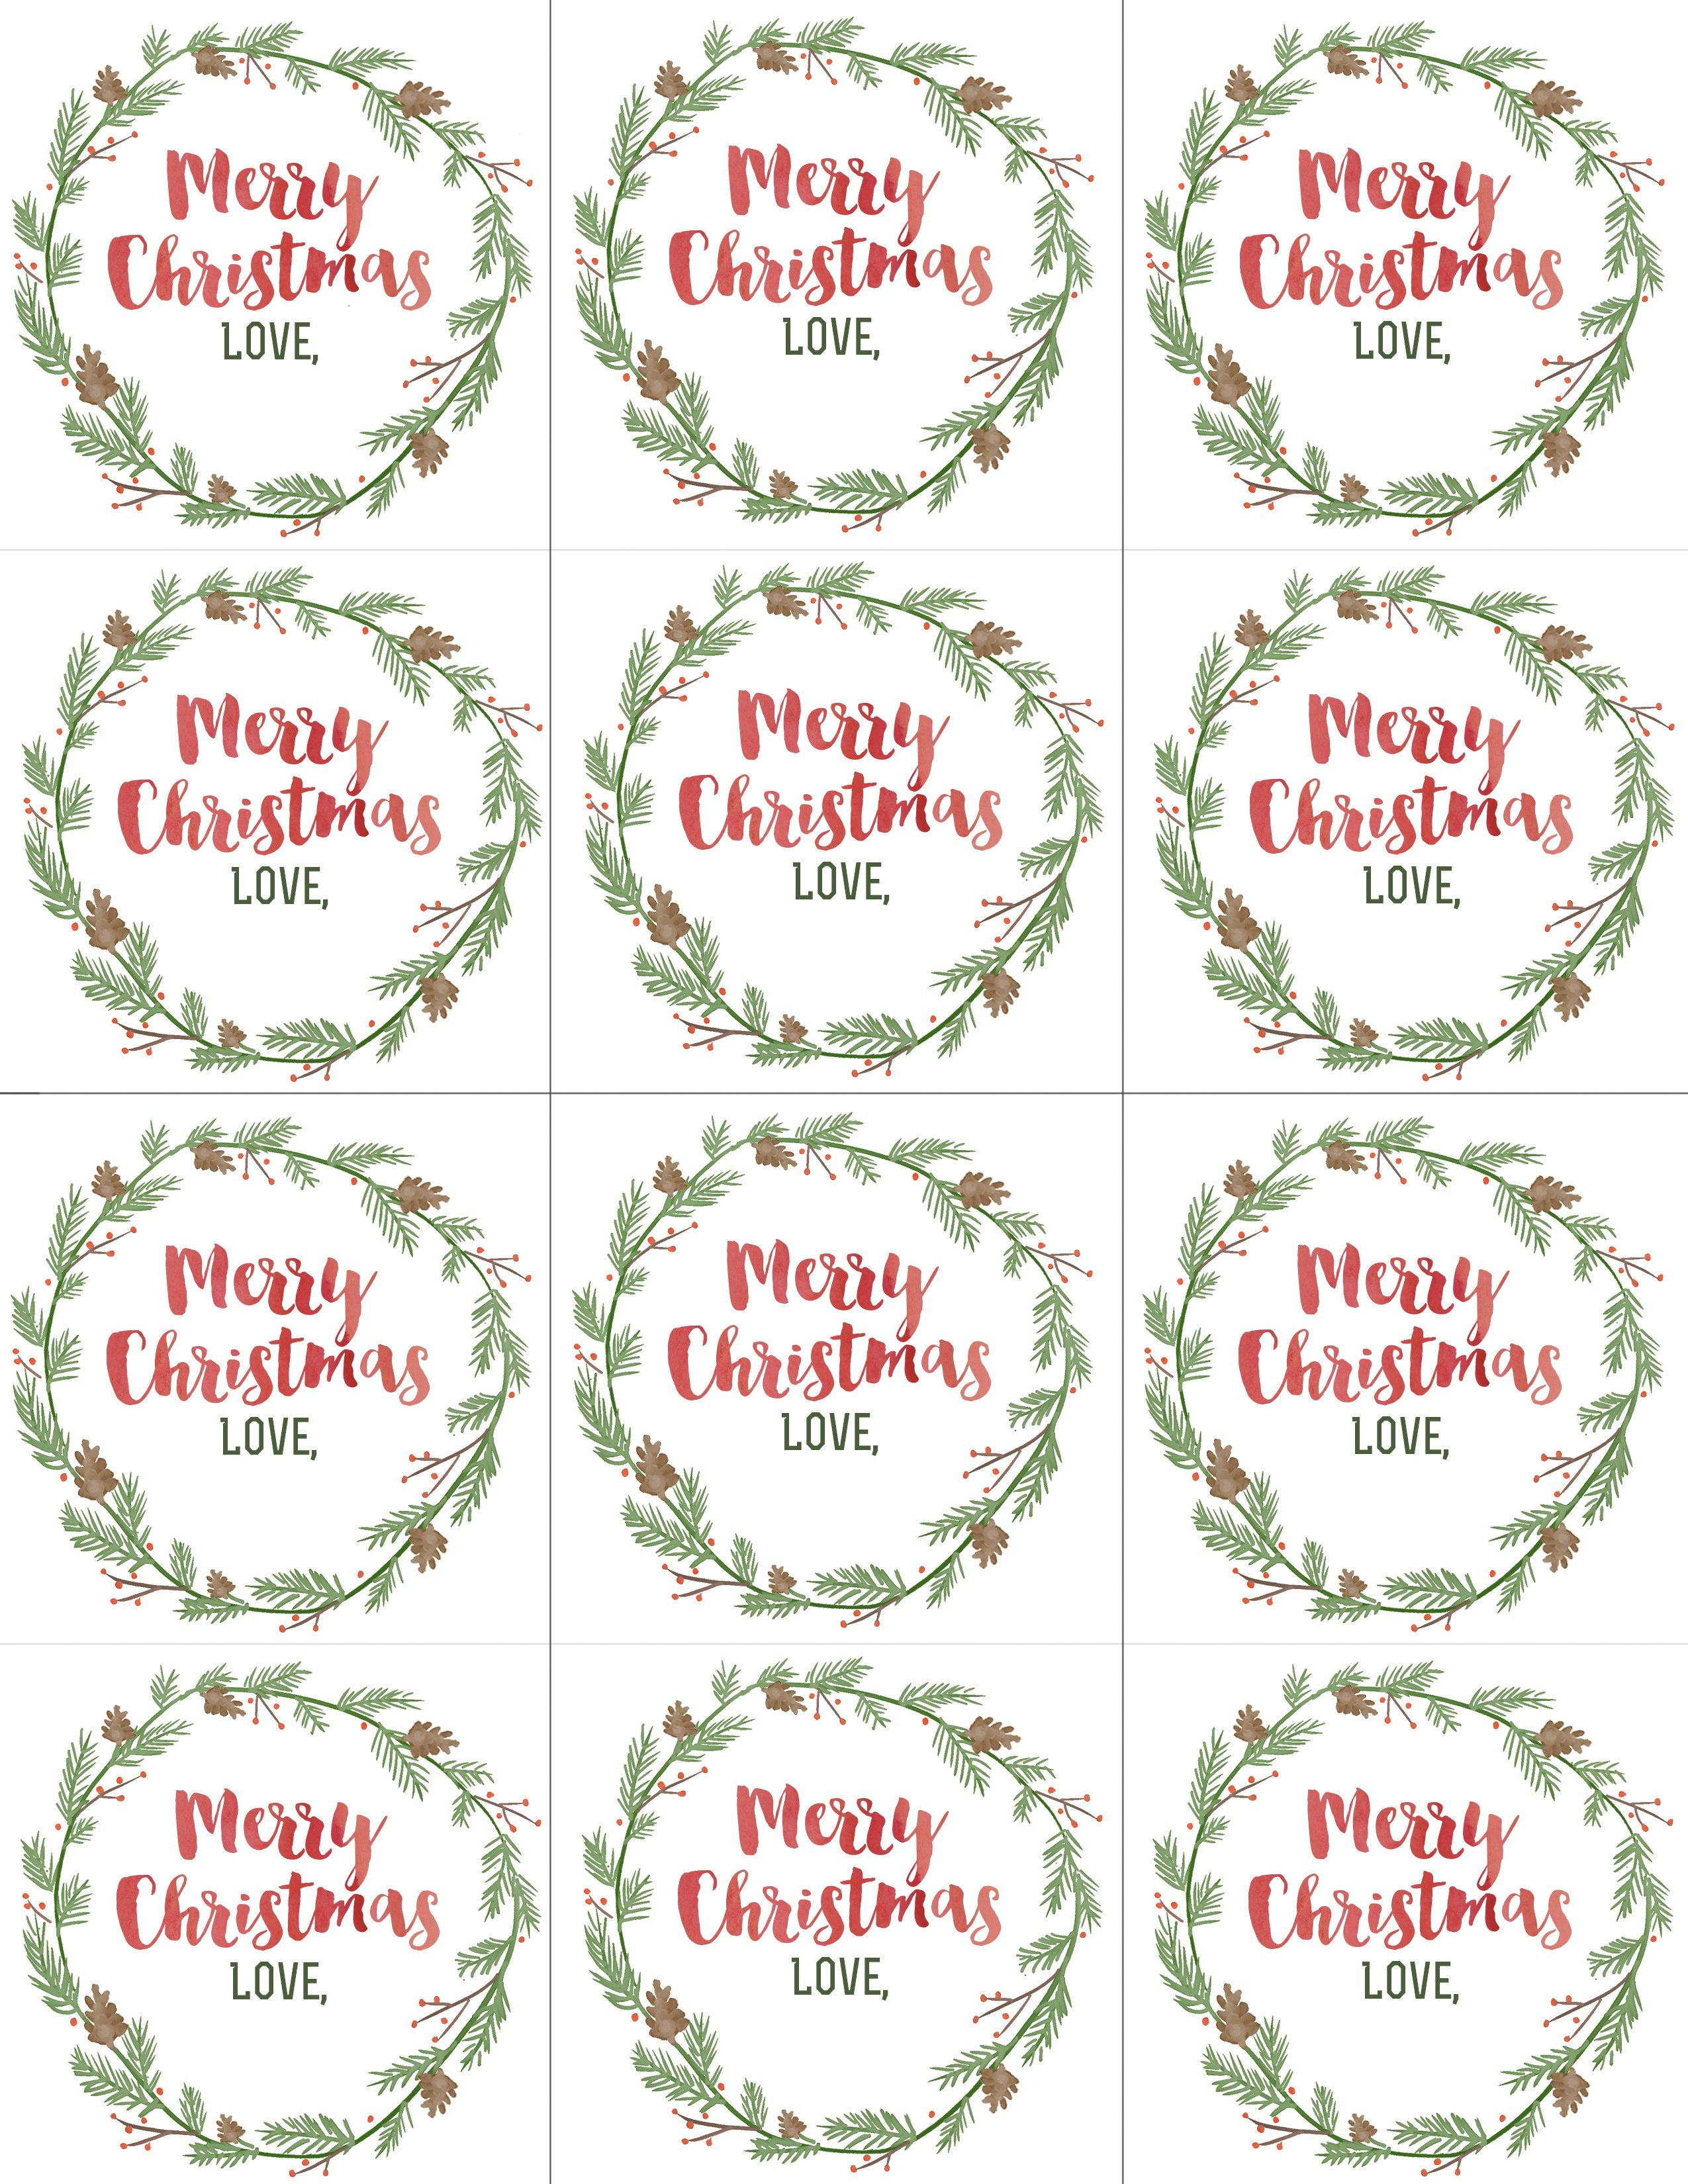 Hand Painted Gift Tags Free Printable | Gift Ideas | Christmas Gift - Free Printable Gift Tags Personalized